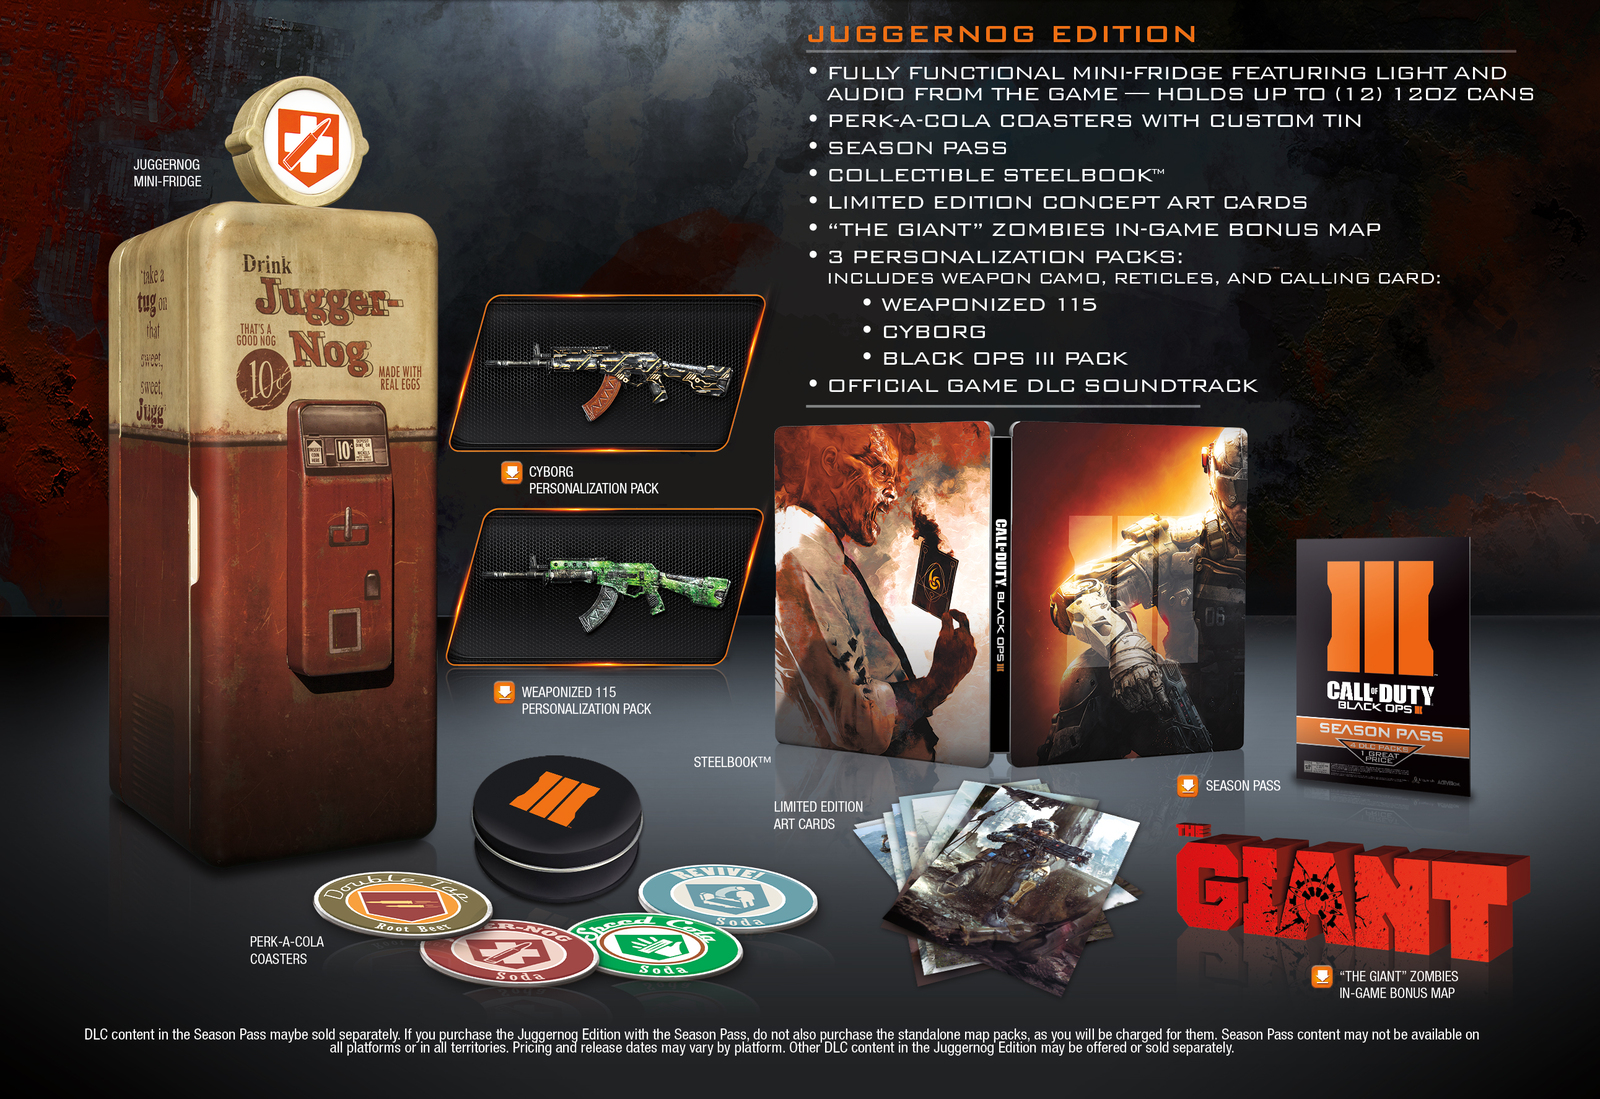 Kühlschrank Cola Design : Call of duty u2013 black ops 3: kühlschrank in collectors edition u2013 giga